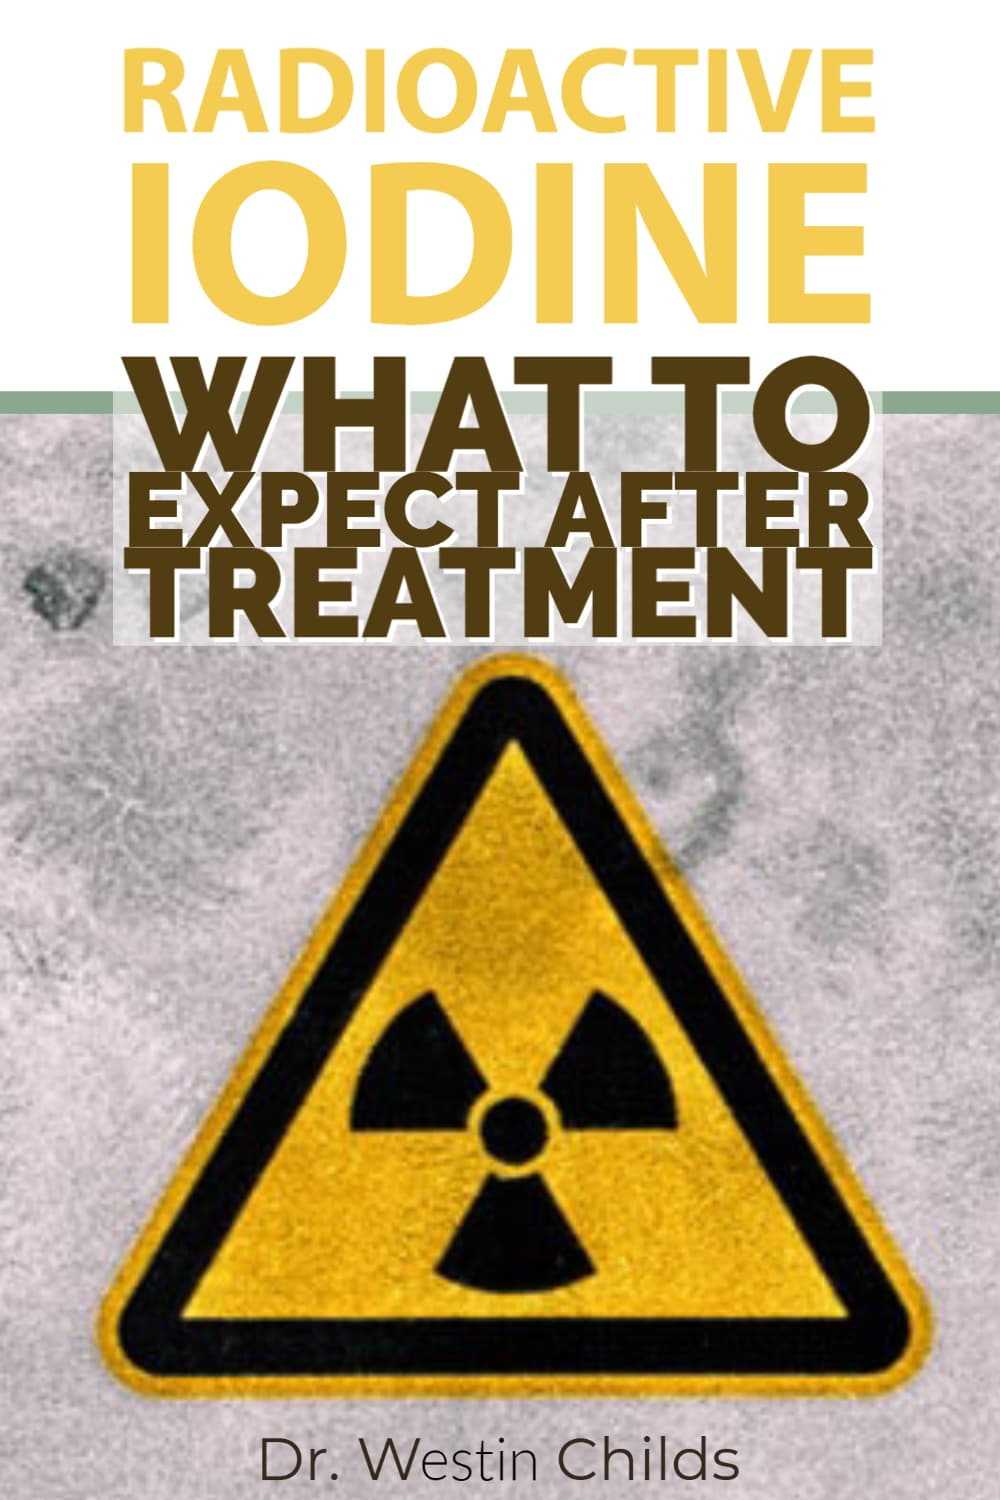 what to expect after radioactive iodine ablation